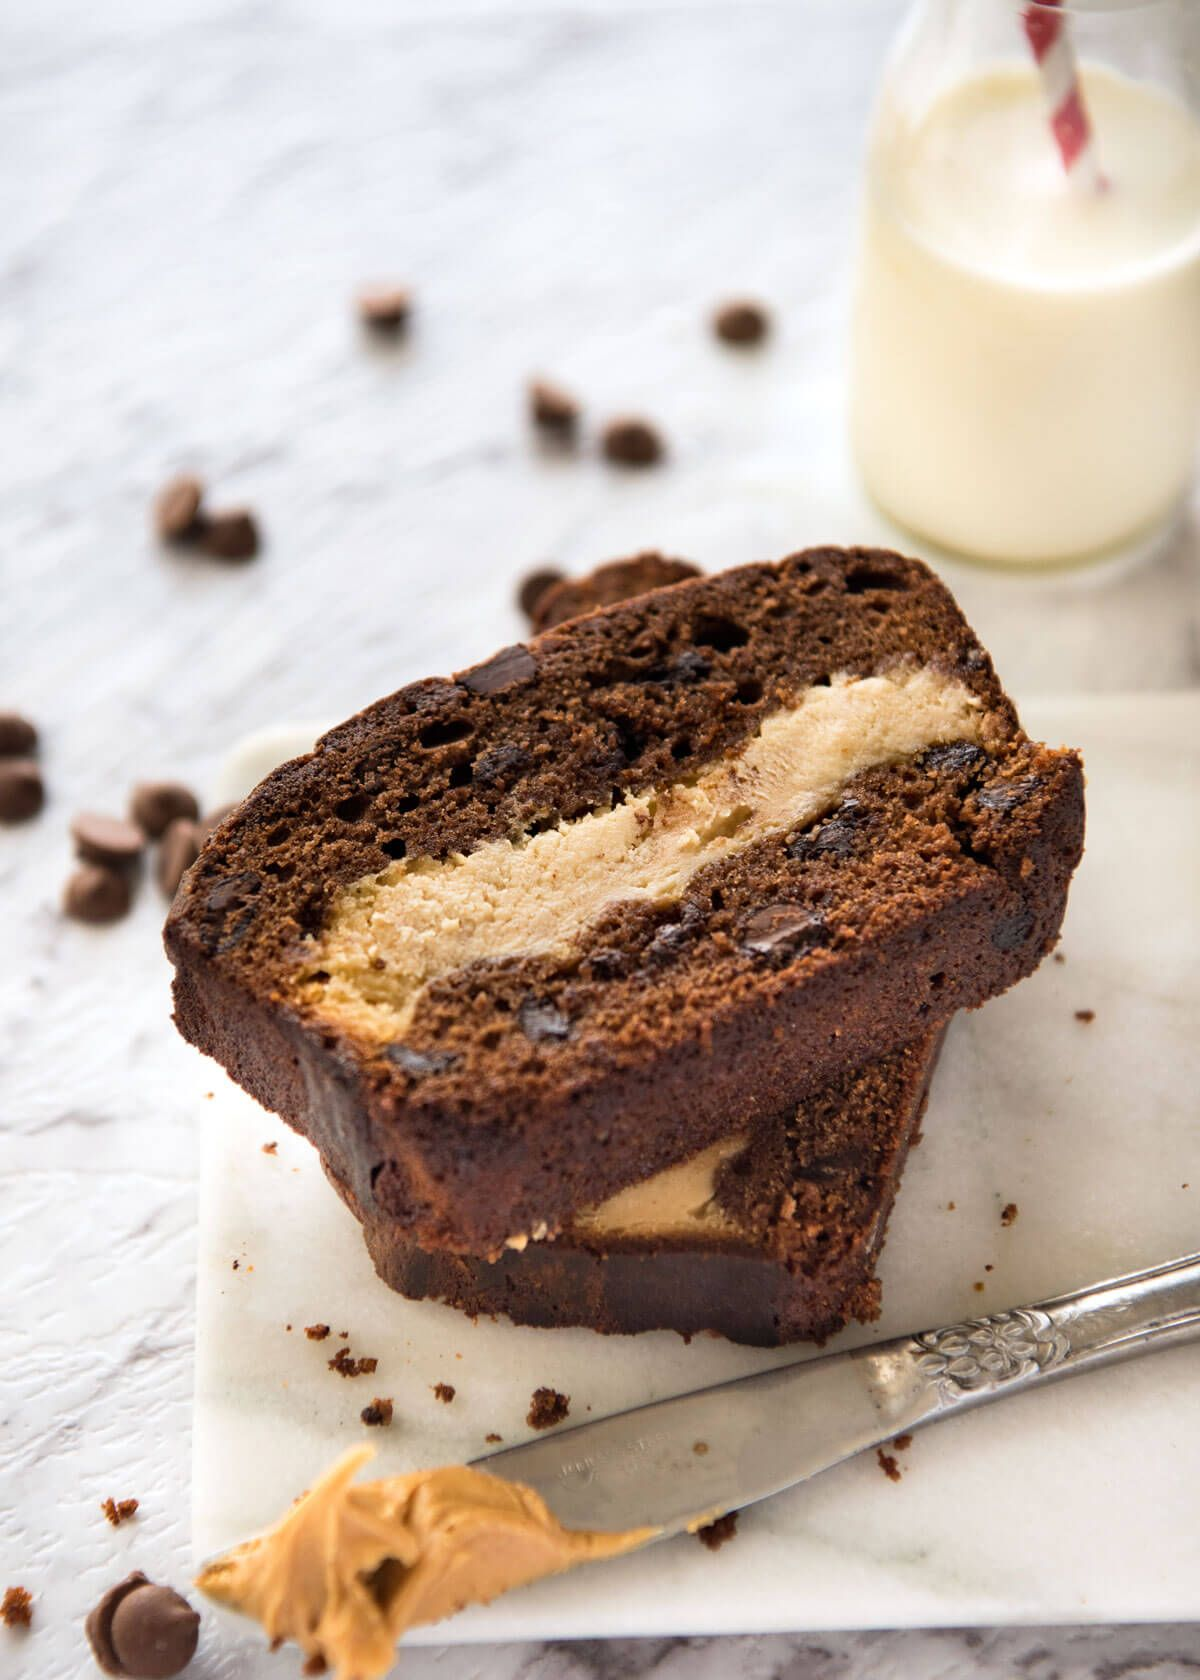 Peanut Butter Cheesecake Stuffed Chocolate Loaf